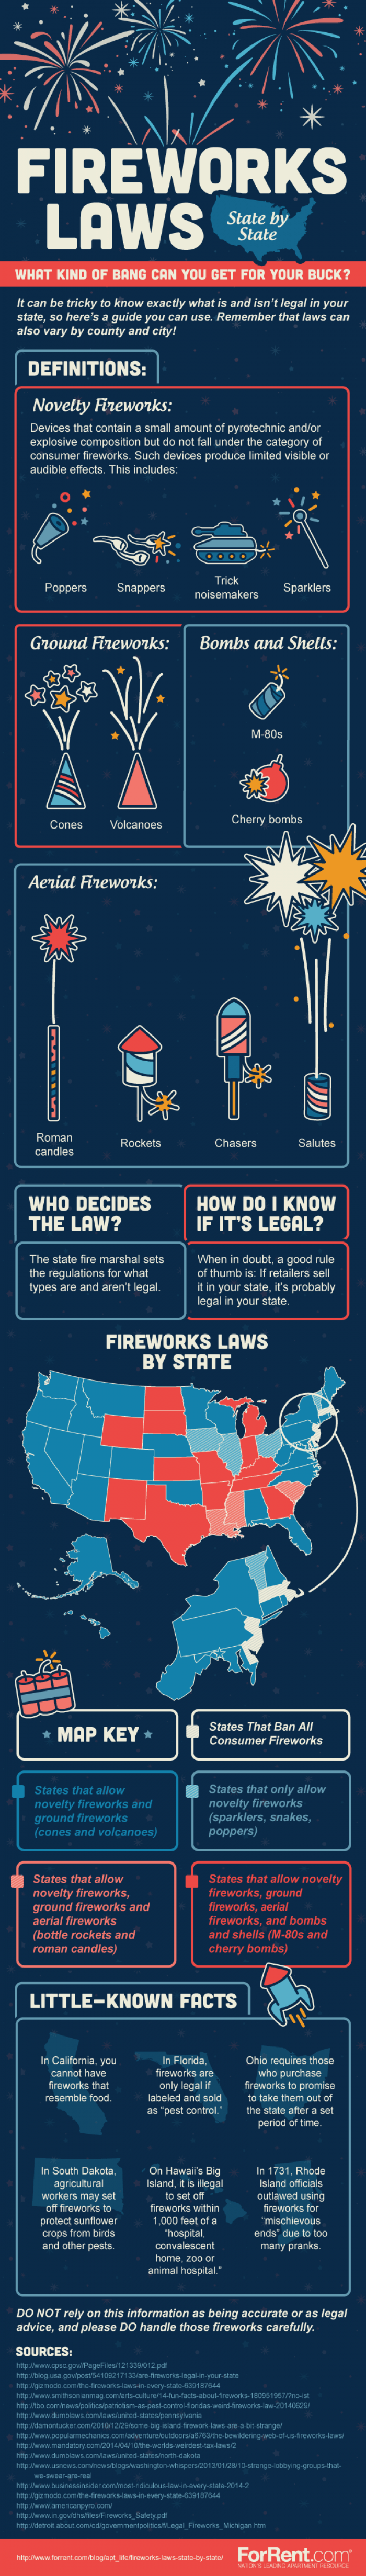 Complete guide to fireworks laws by state